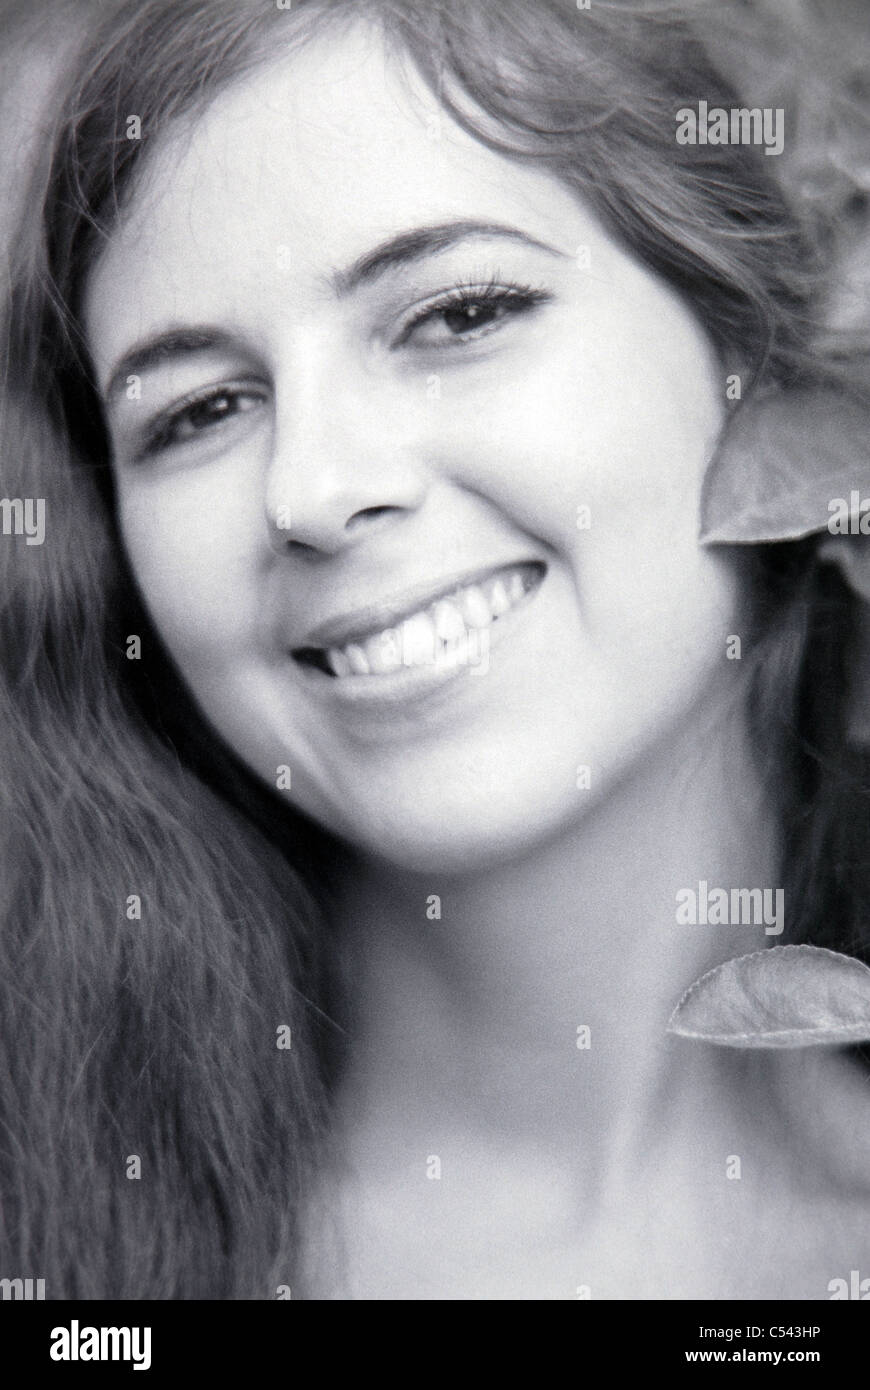 Smiling face of young woman - Stock Image